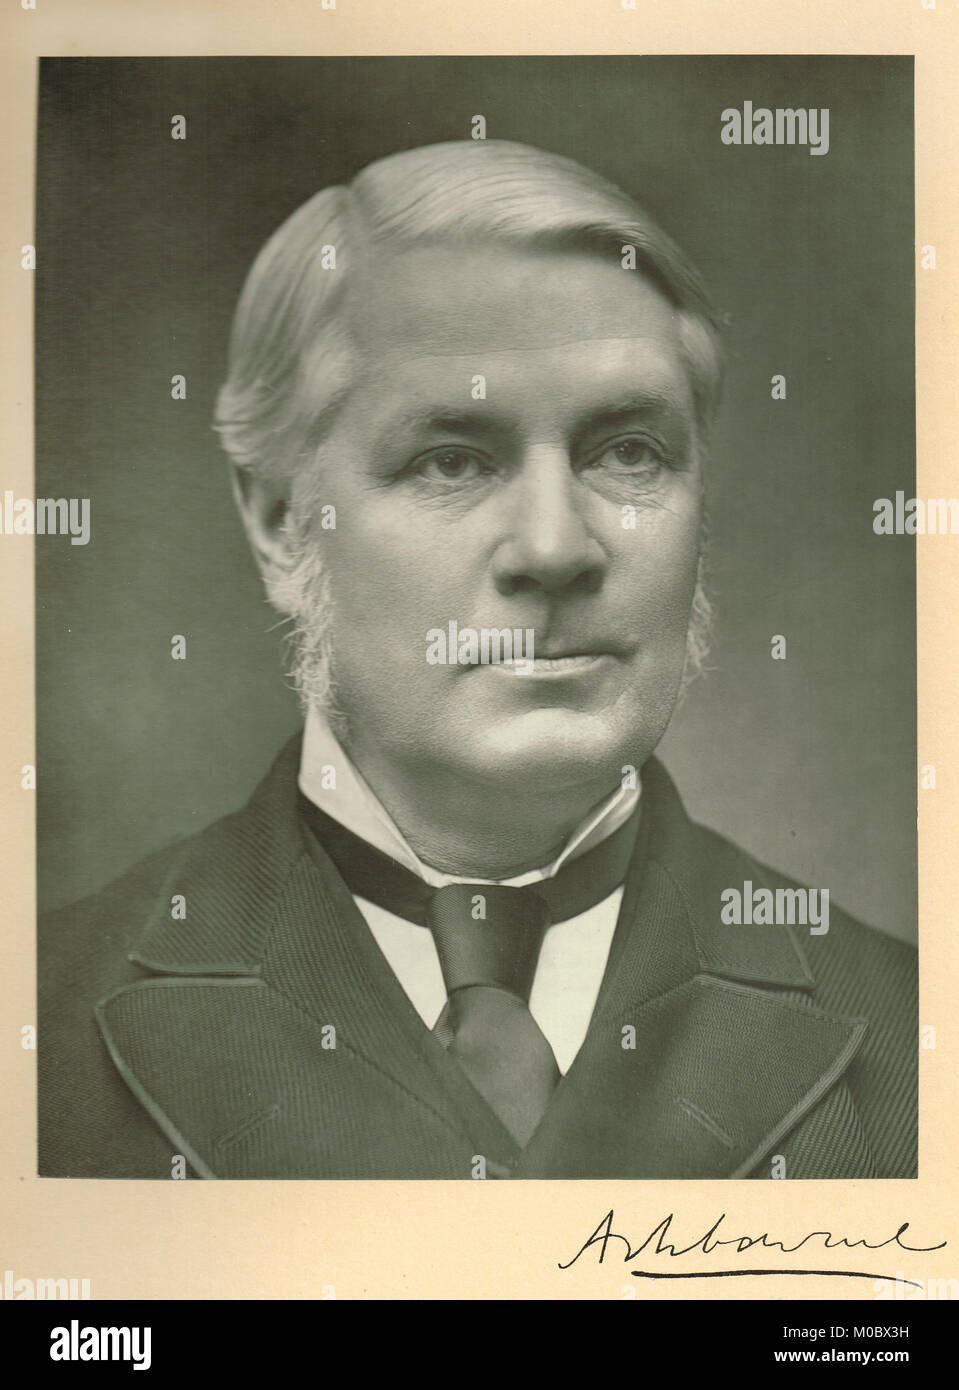 Edward Gibson, 1st Baron Ashbourne, 1837-1913, Member of Parliament for Dublin University & Lord Chancellor - Stock Image